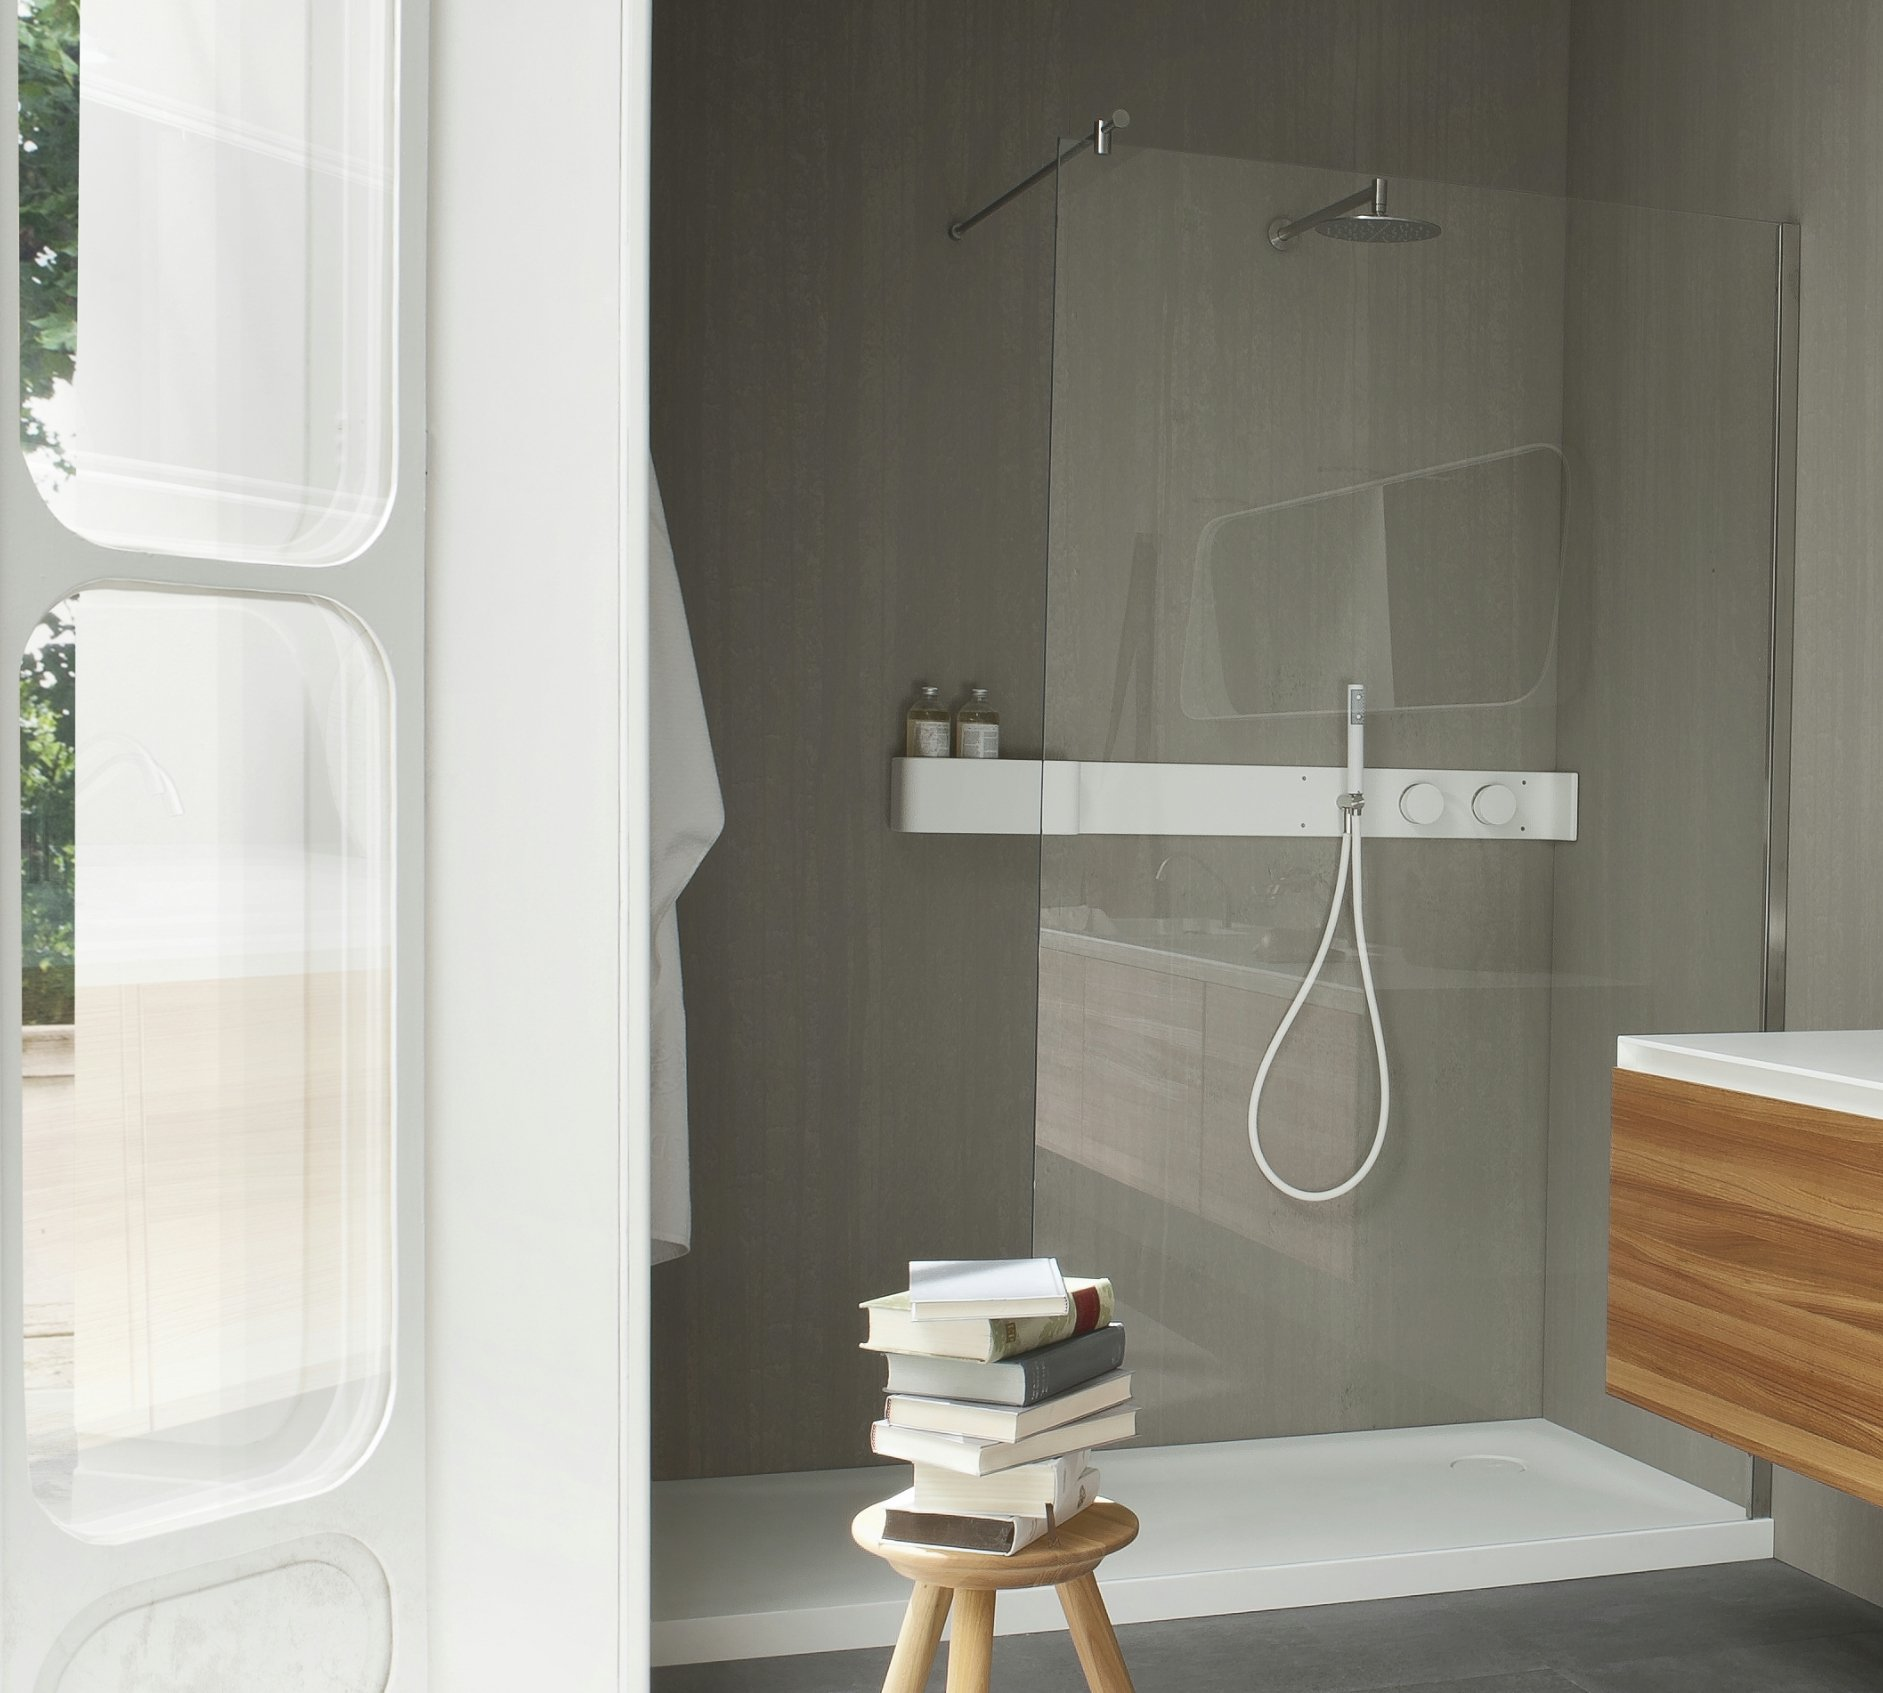 Ergo nomic receveur de douche en corian by rexa design for Receveur de douche design